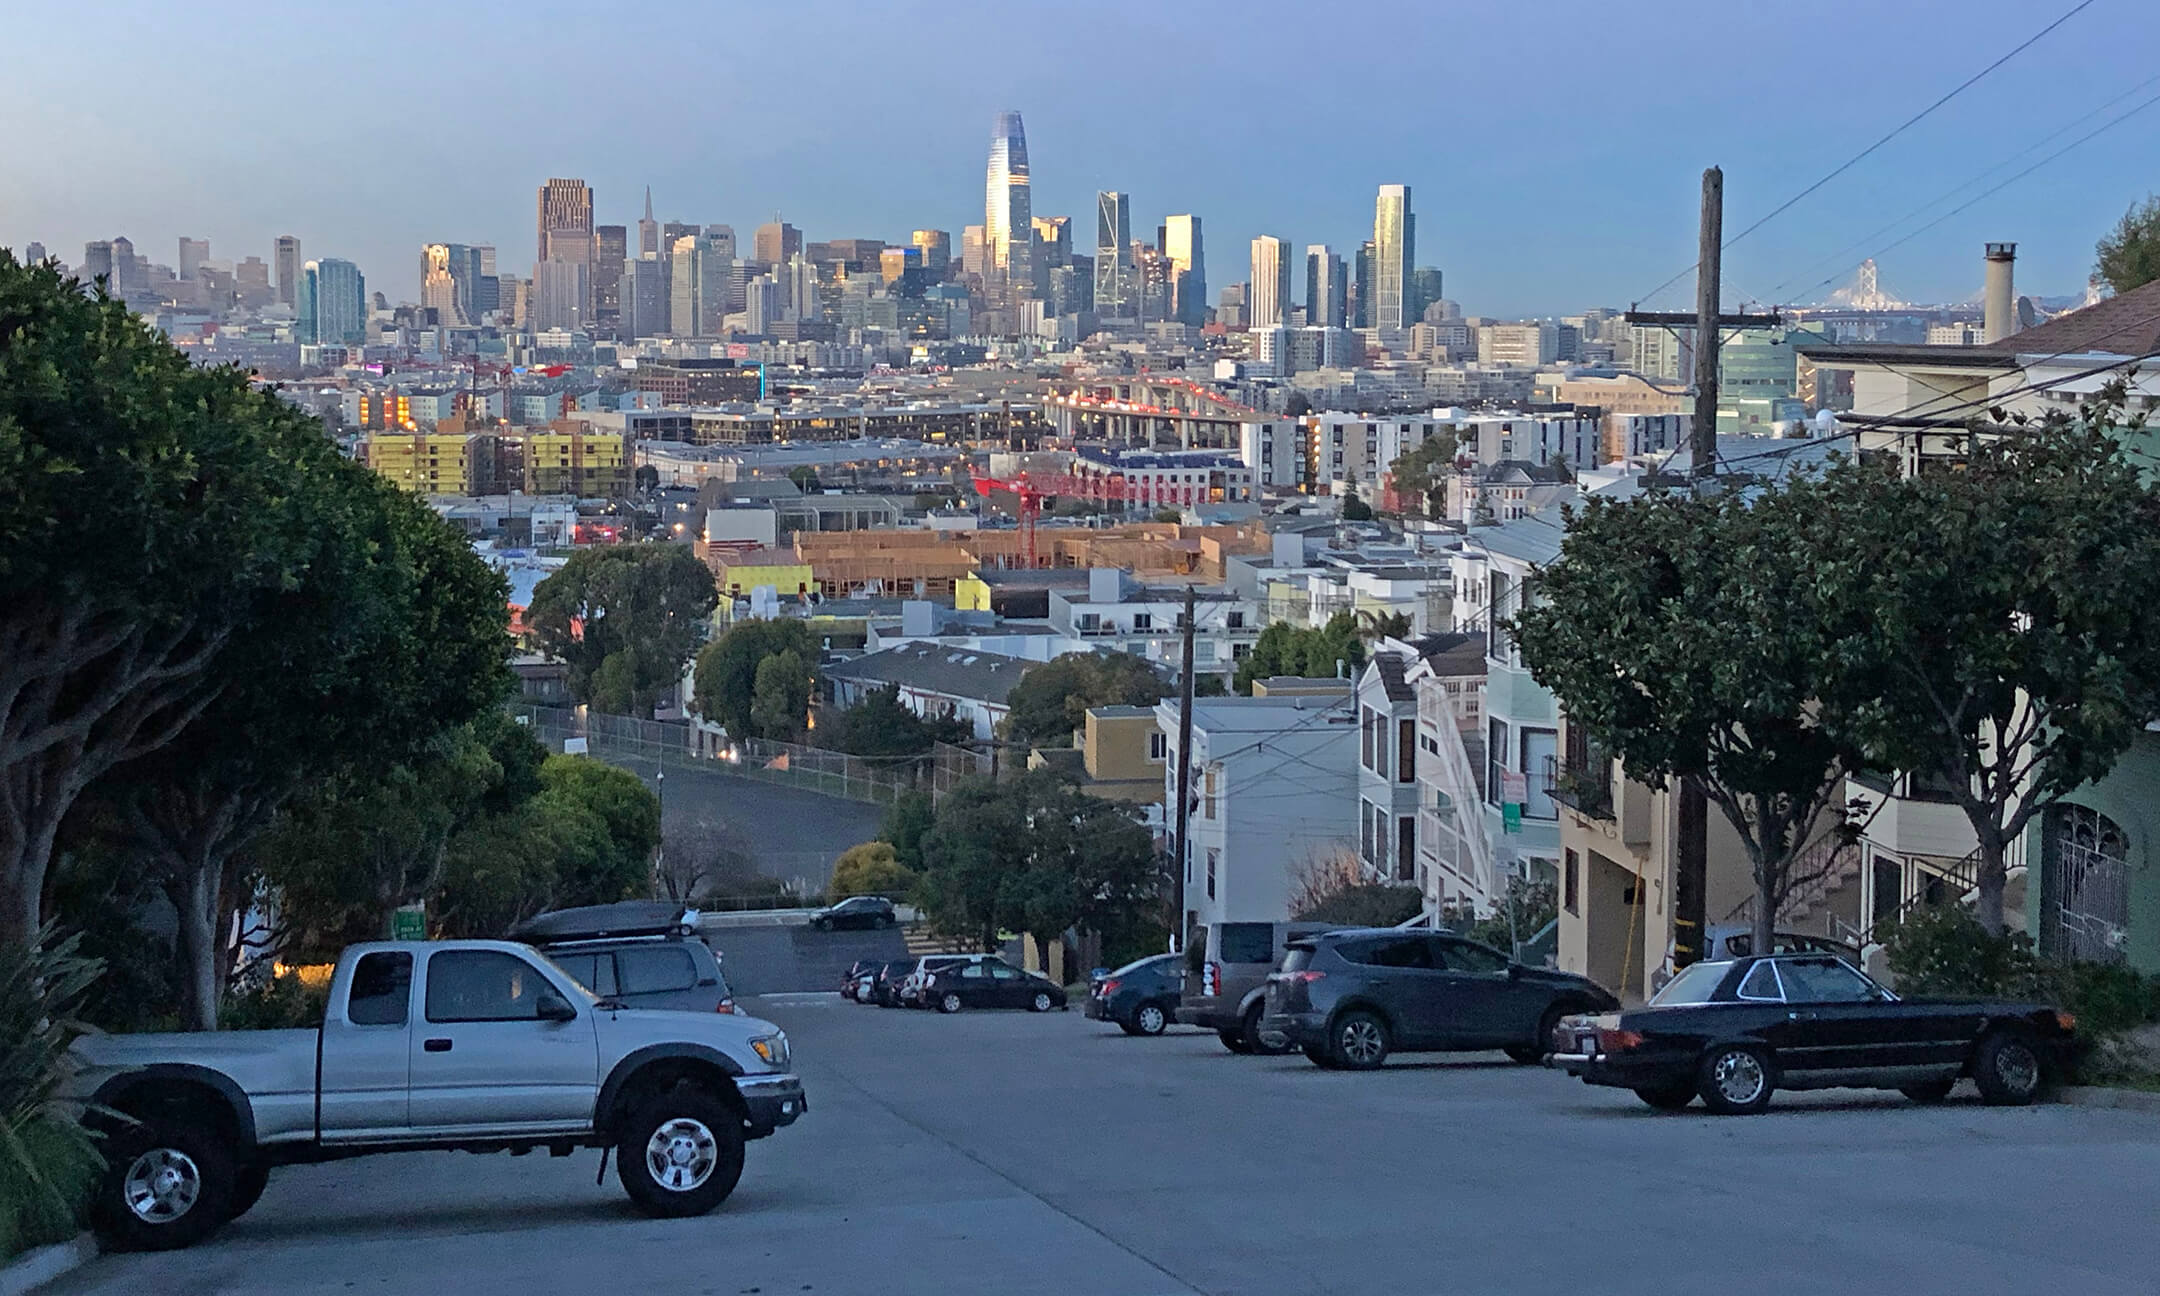 View of downtown San Francisco from Potrero Hill